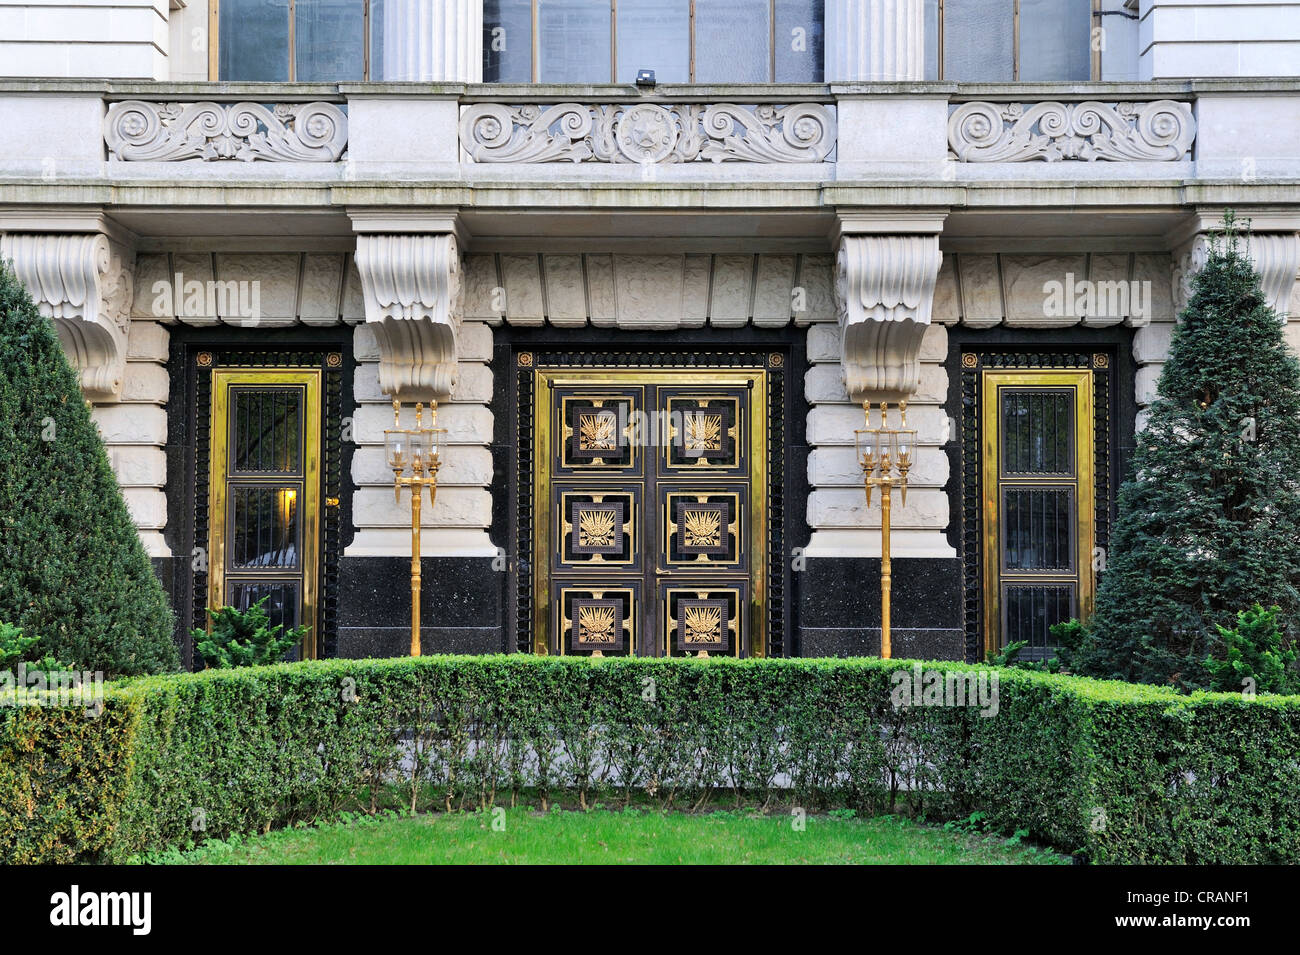 Entrance portal of the Embassy of the Russian Federation, unter den Linden boulevard, Berlin, Germany, Europe - Stock Image